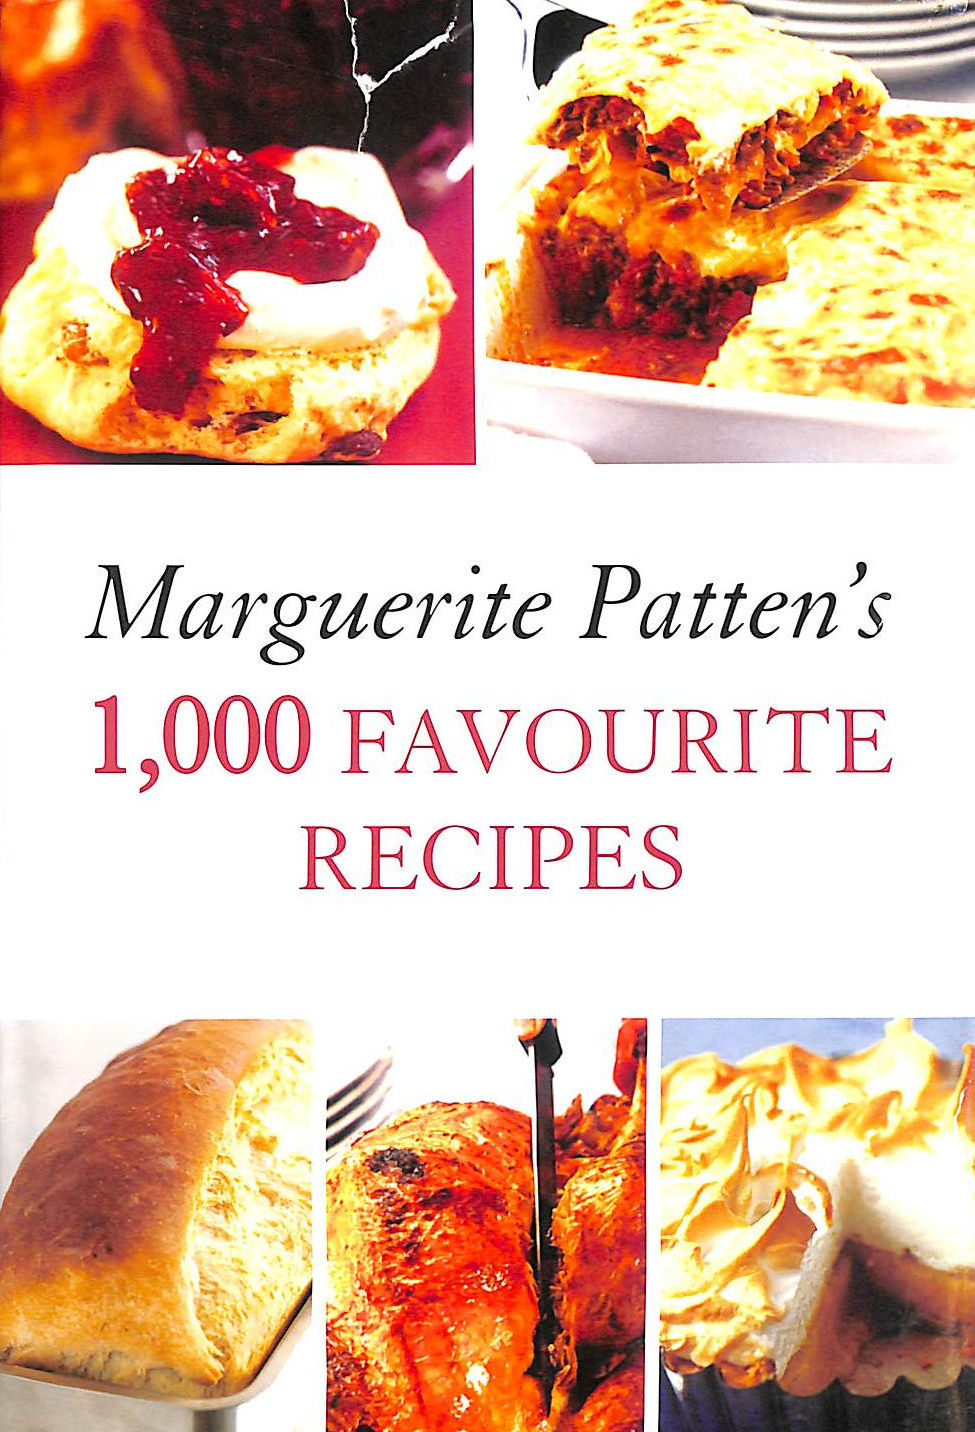 Image for Marguerite Patten's 1,000 Favourite Recipes